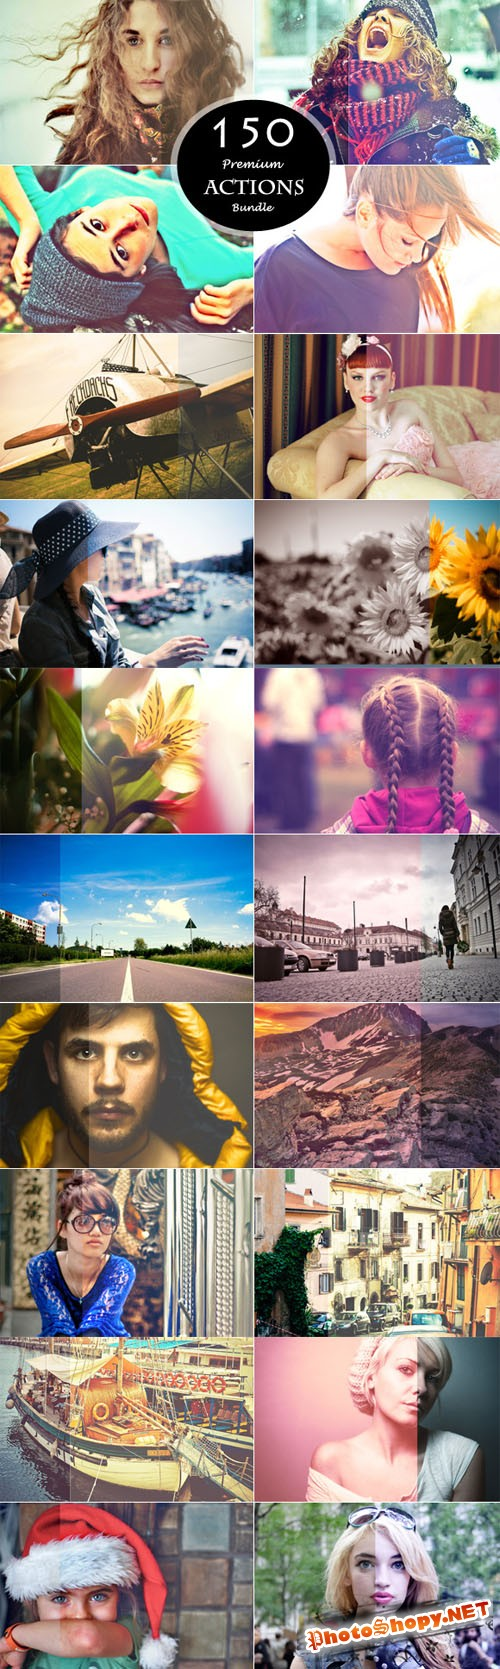 CreativeMarket - 150 Actions Bundle